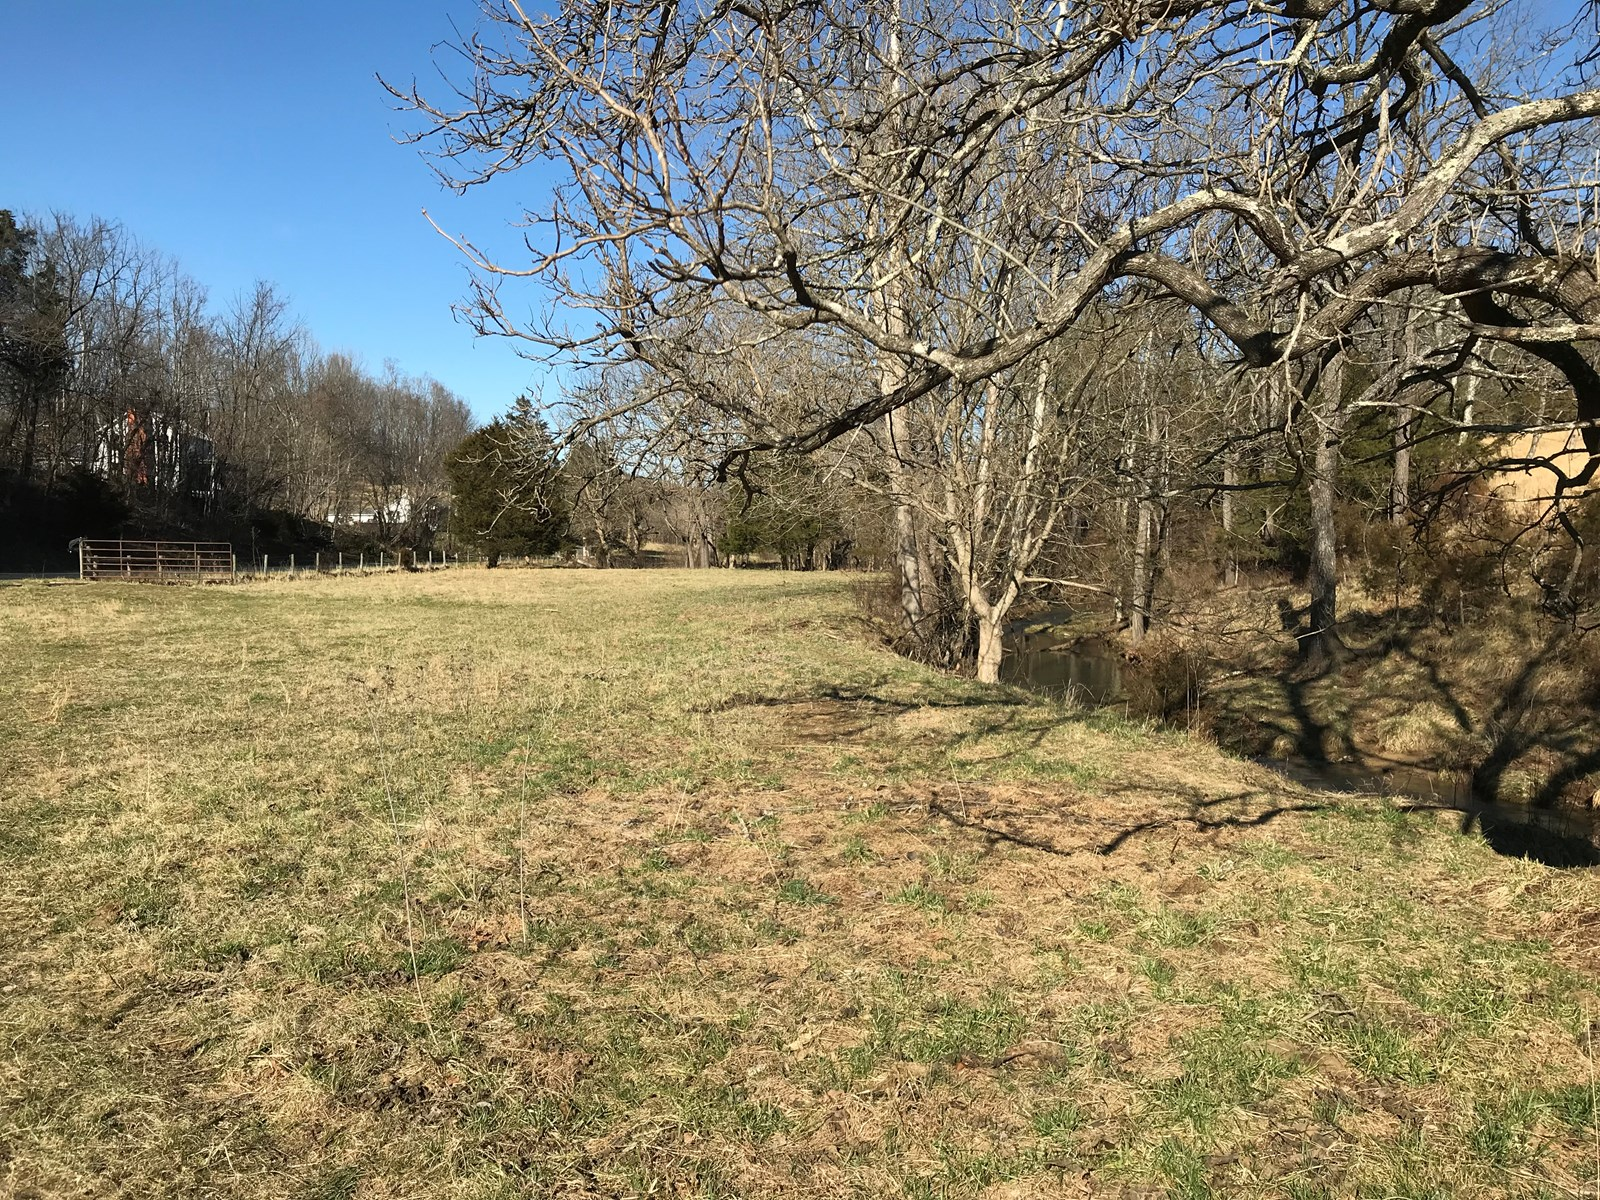 Recreational Property for Sale in Rockbridge County VA!